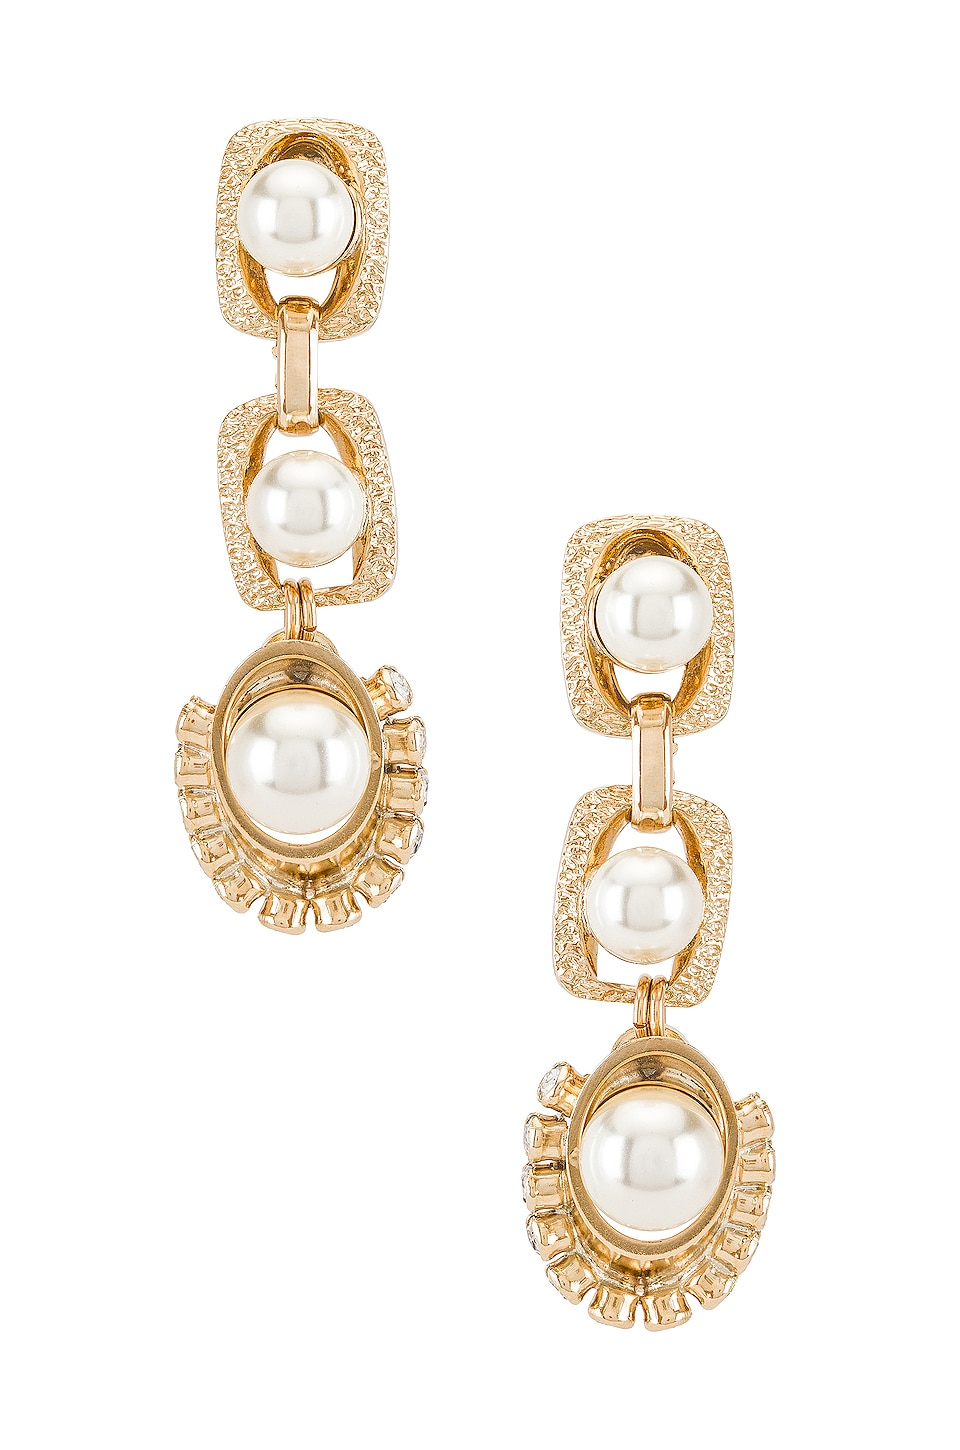 Anton Heunis Pearl Drop Earrings in Cream